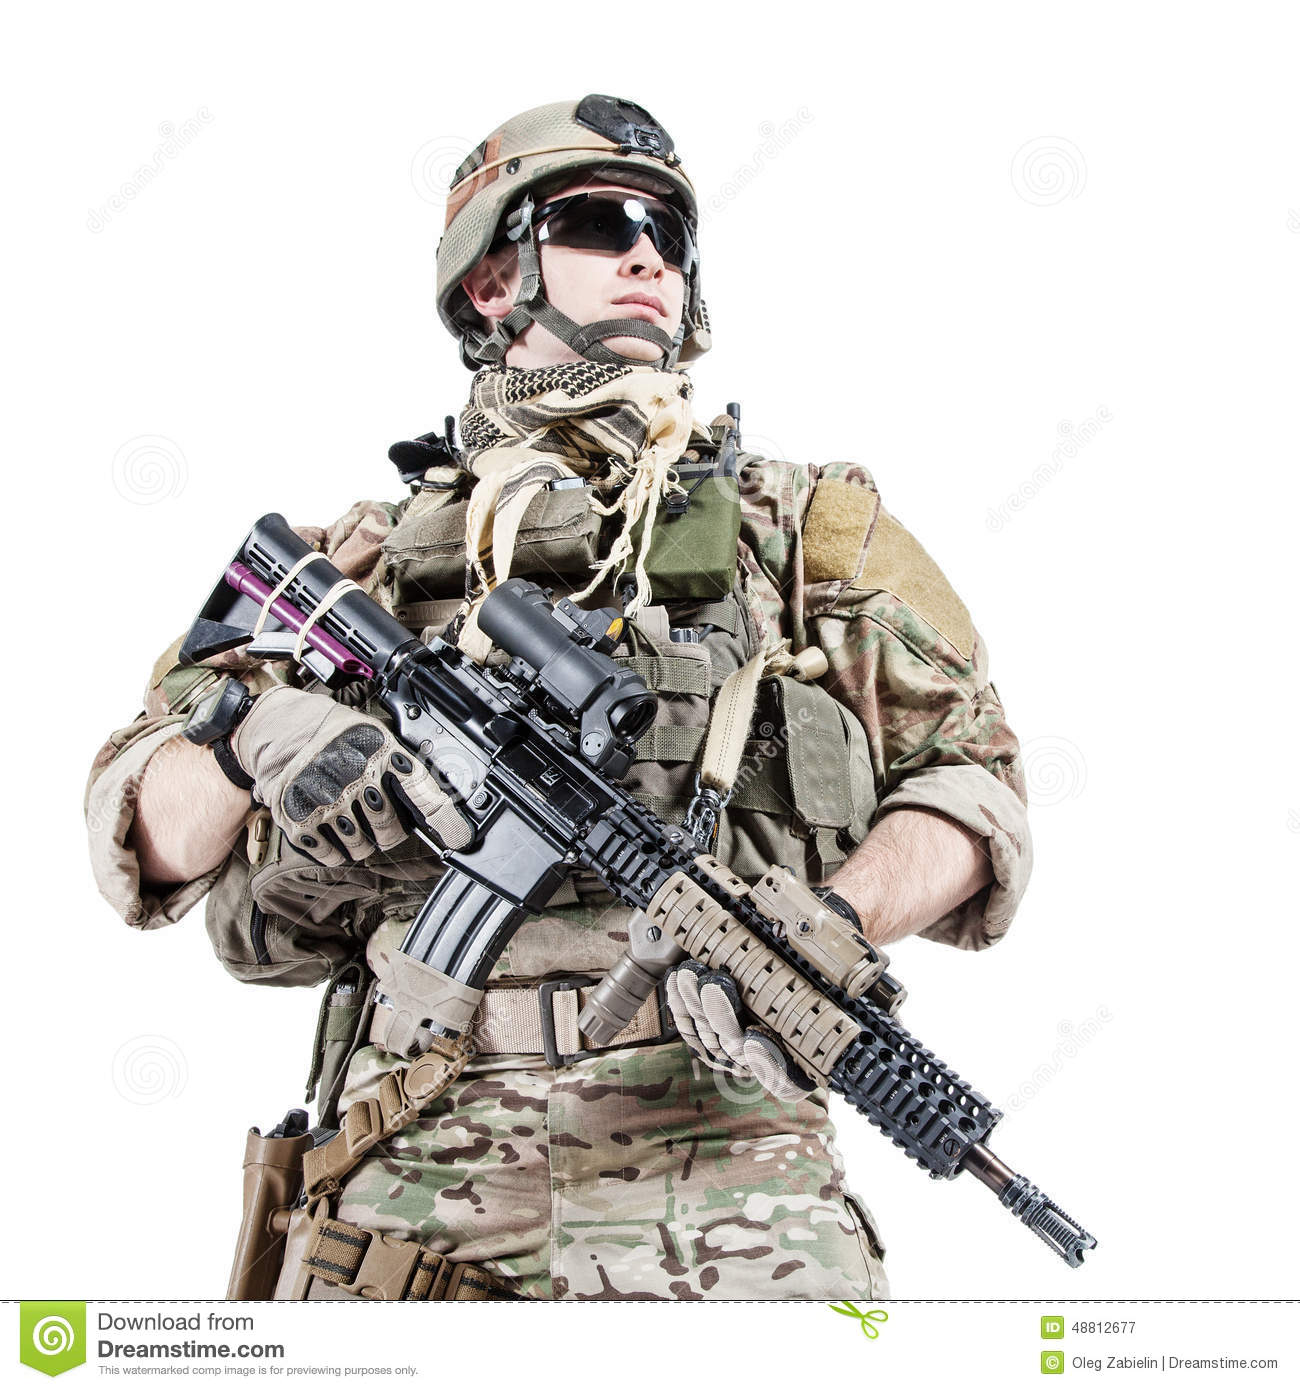 United States Army ranger with assault rifle.